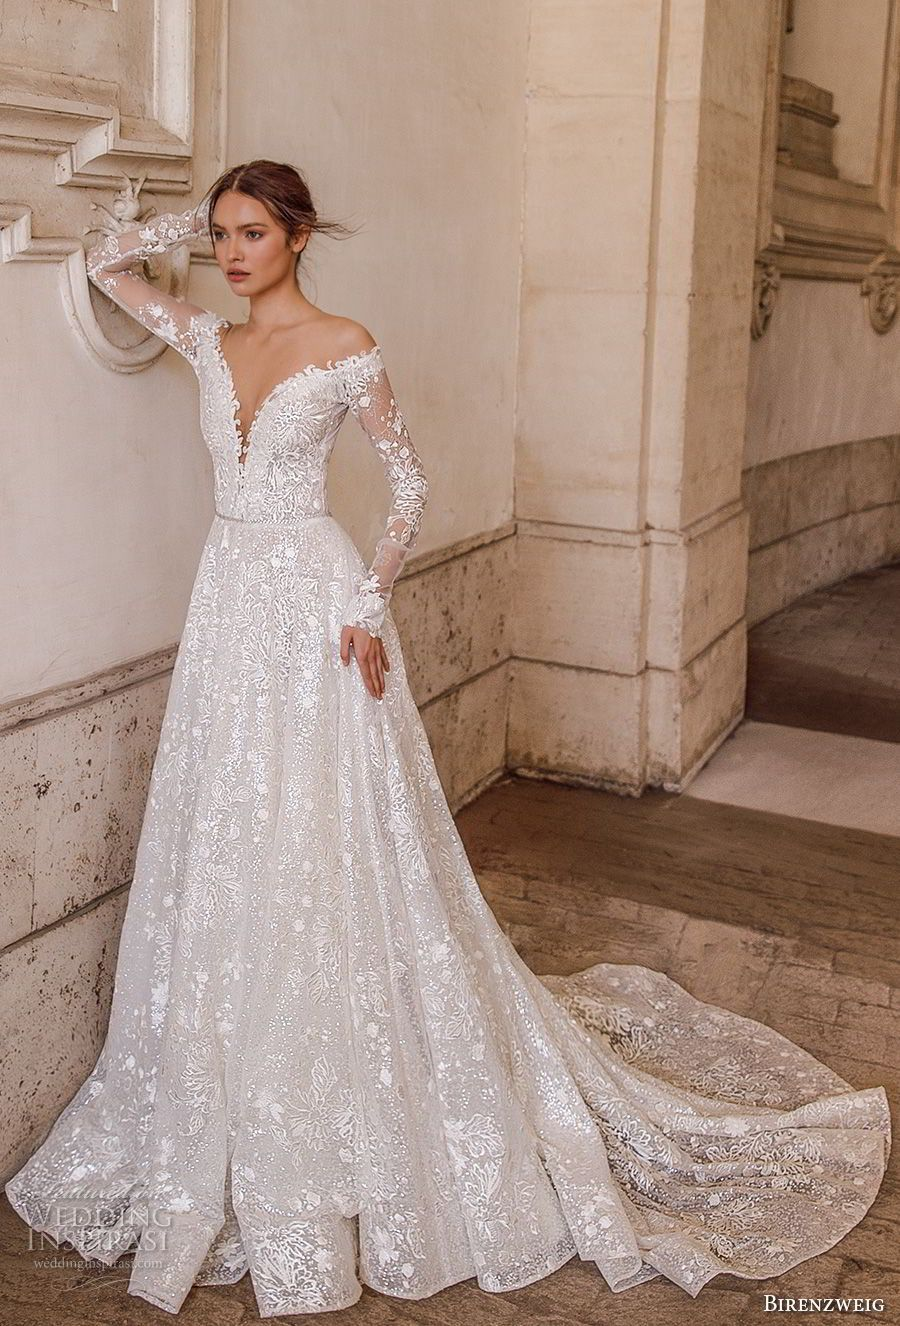 Birenzweig wedding dresses dream dresses pinterest chapel